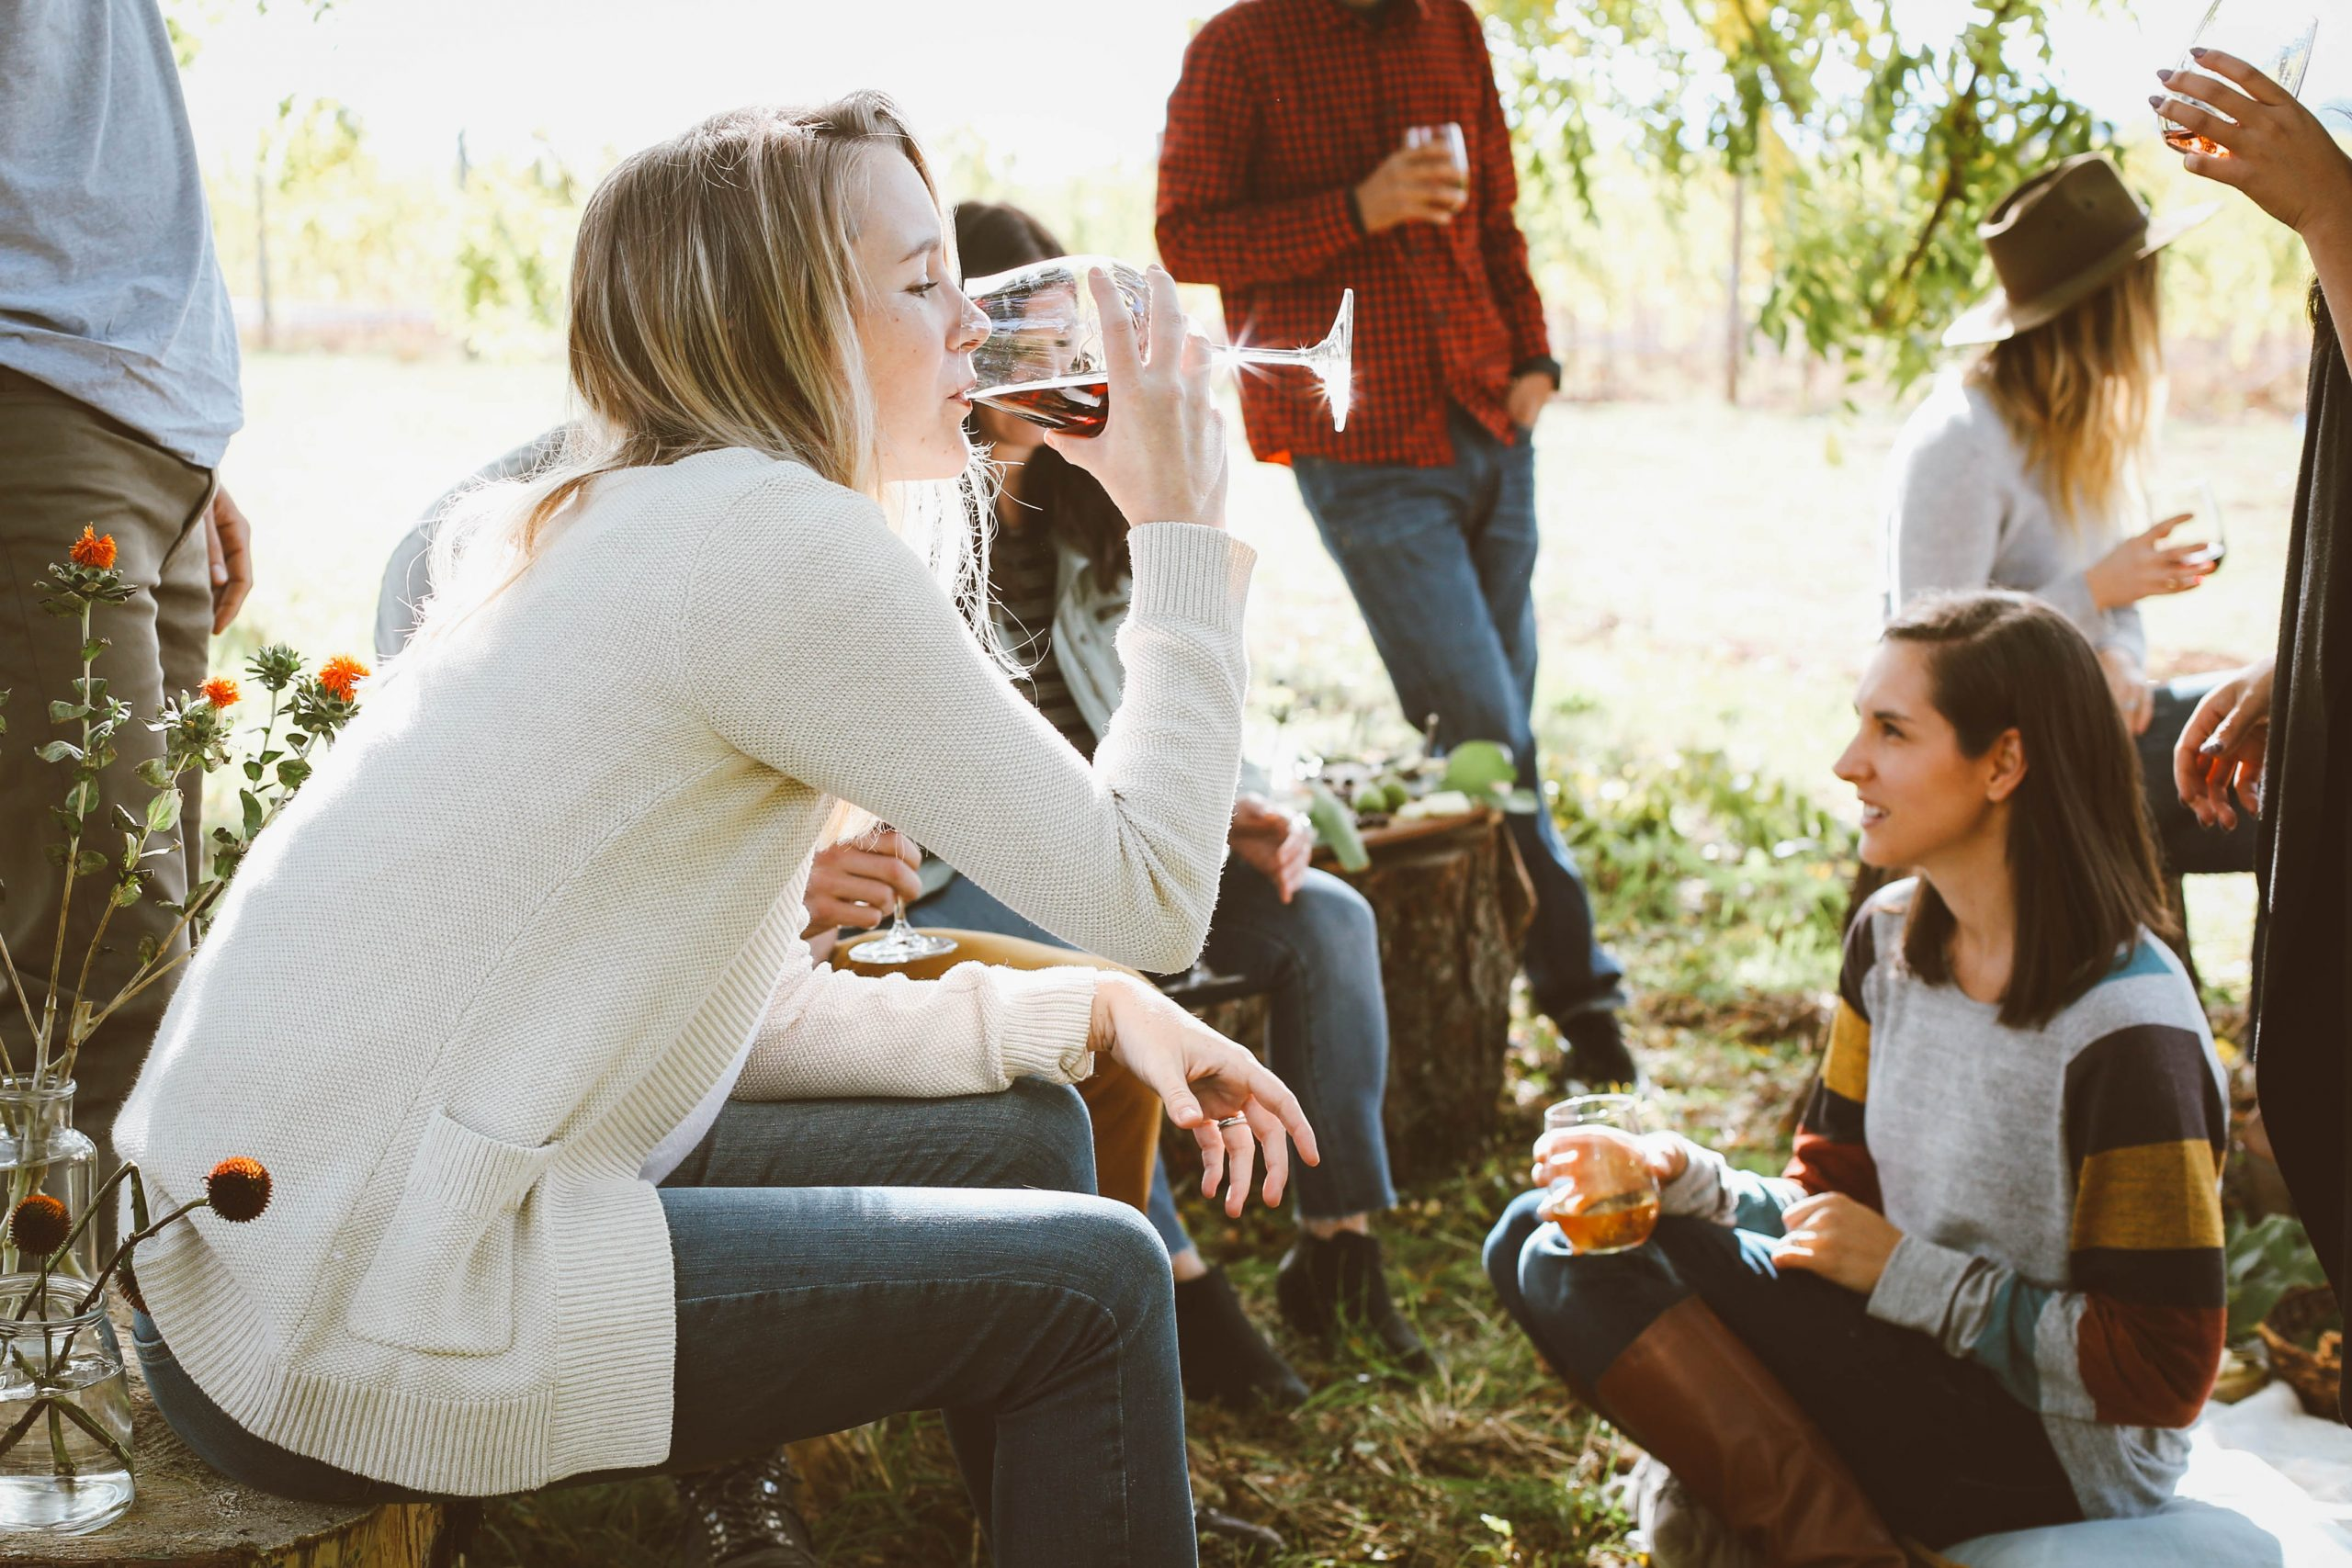 What I learnt about drinking cultures when I thought I knew everything